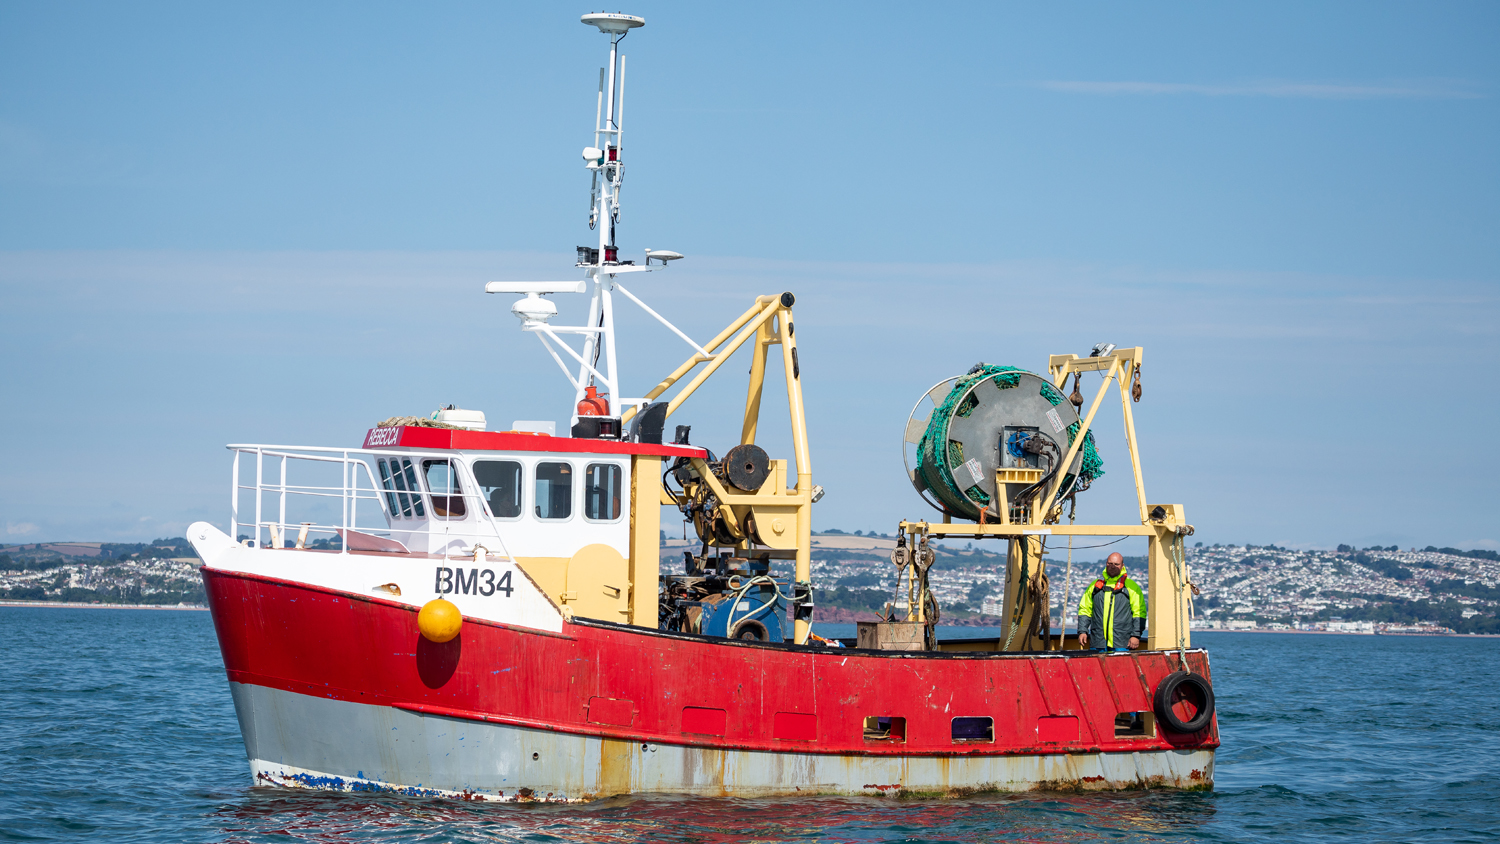 A commercial fishing vessel with an A-frame